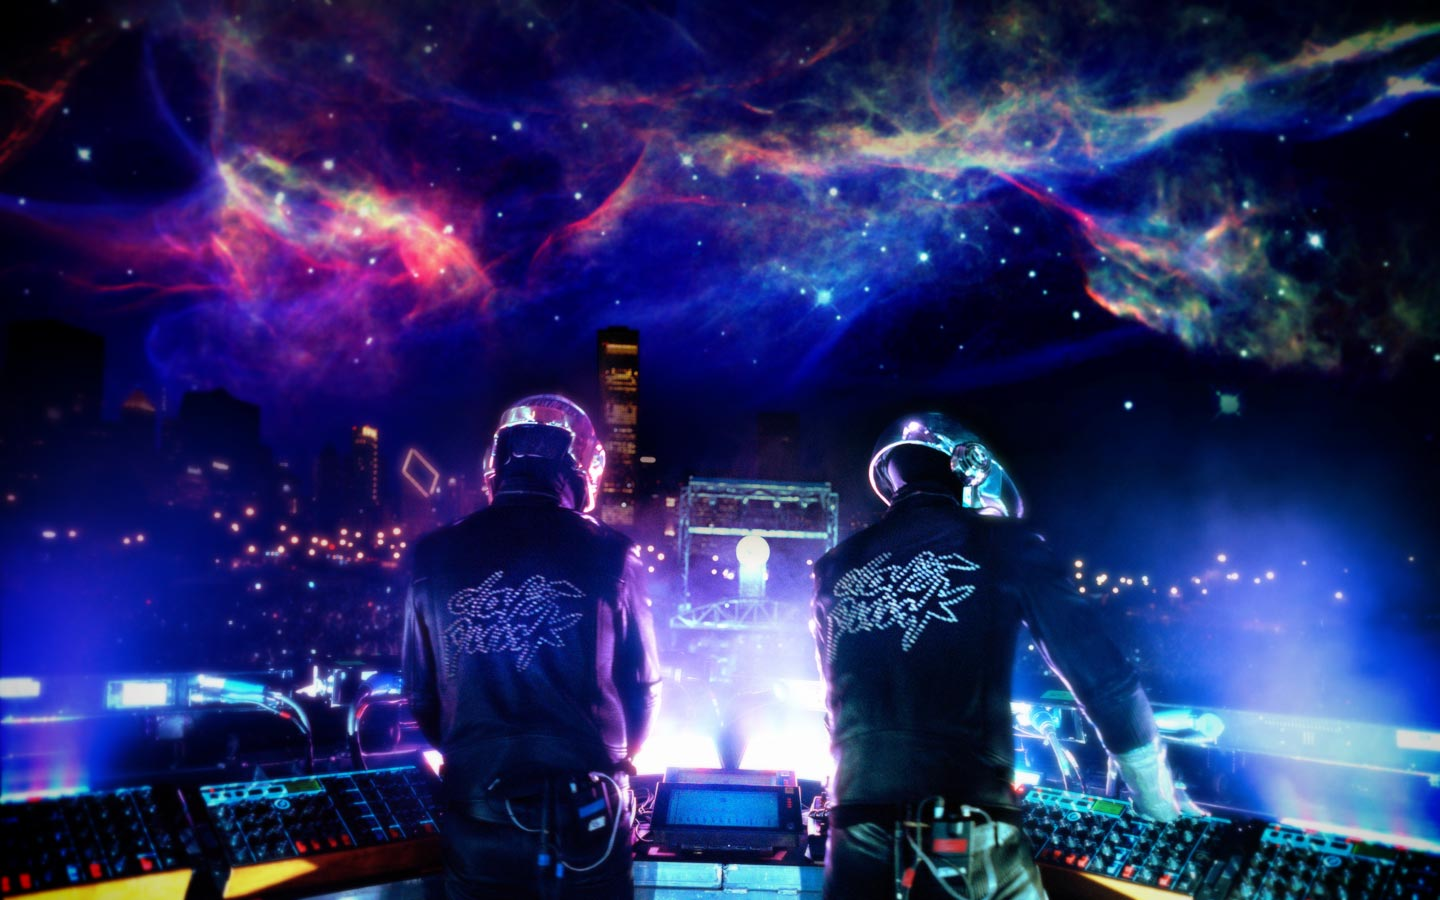 Desktop Wallpaper Celebrities Music Daft Punk Electronic 1440x900px